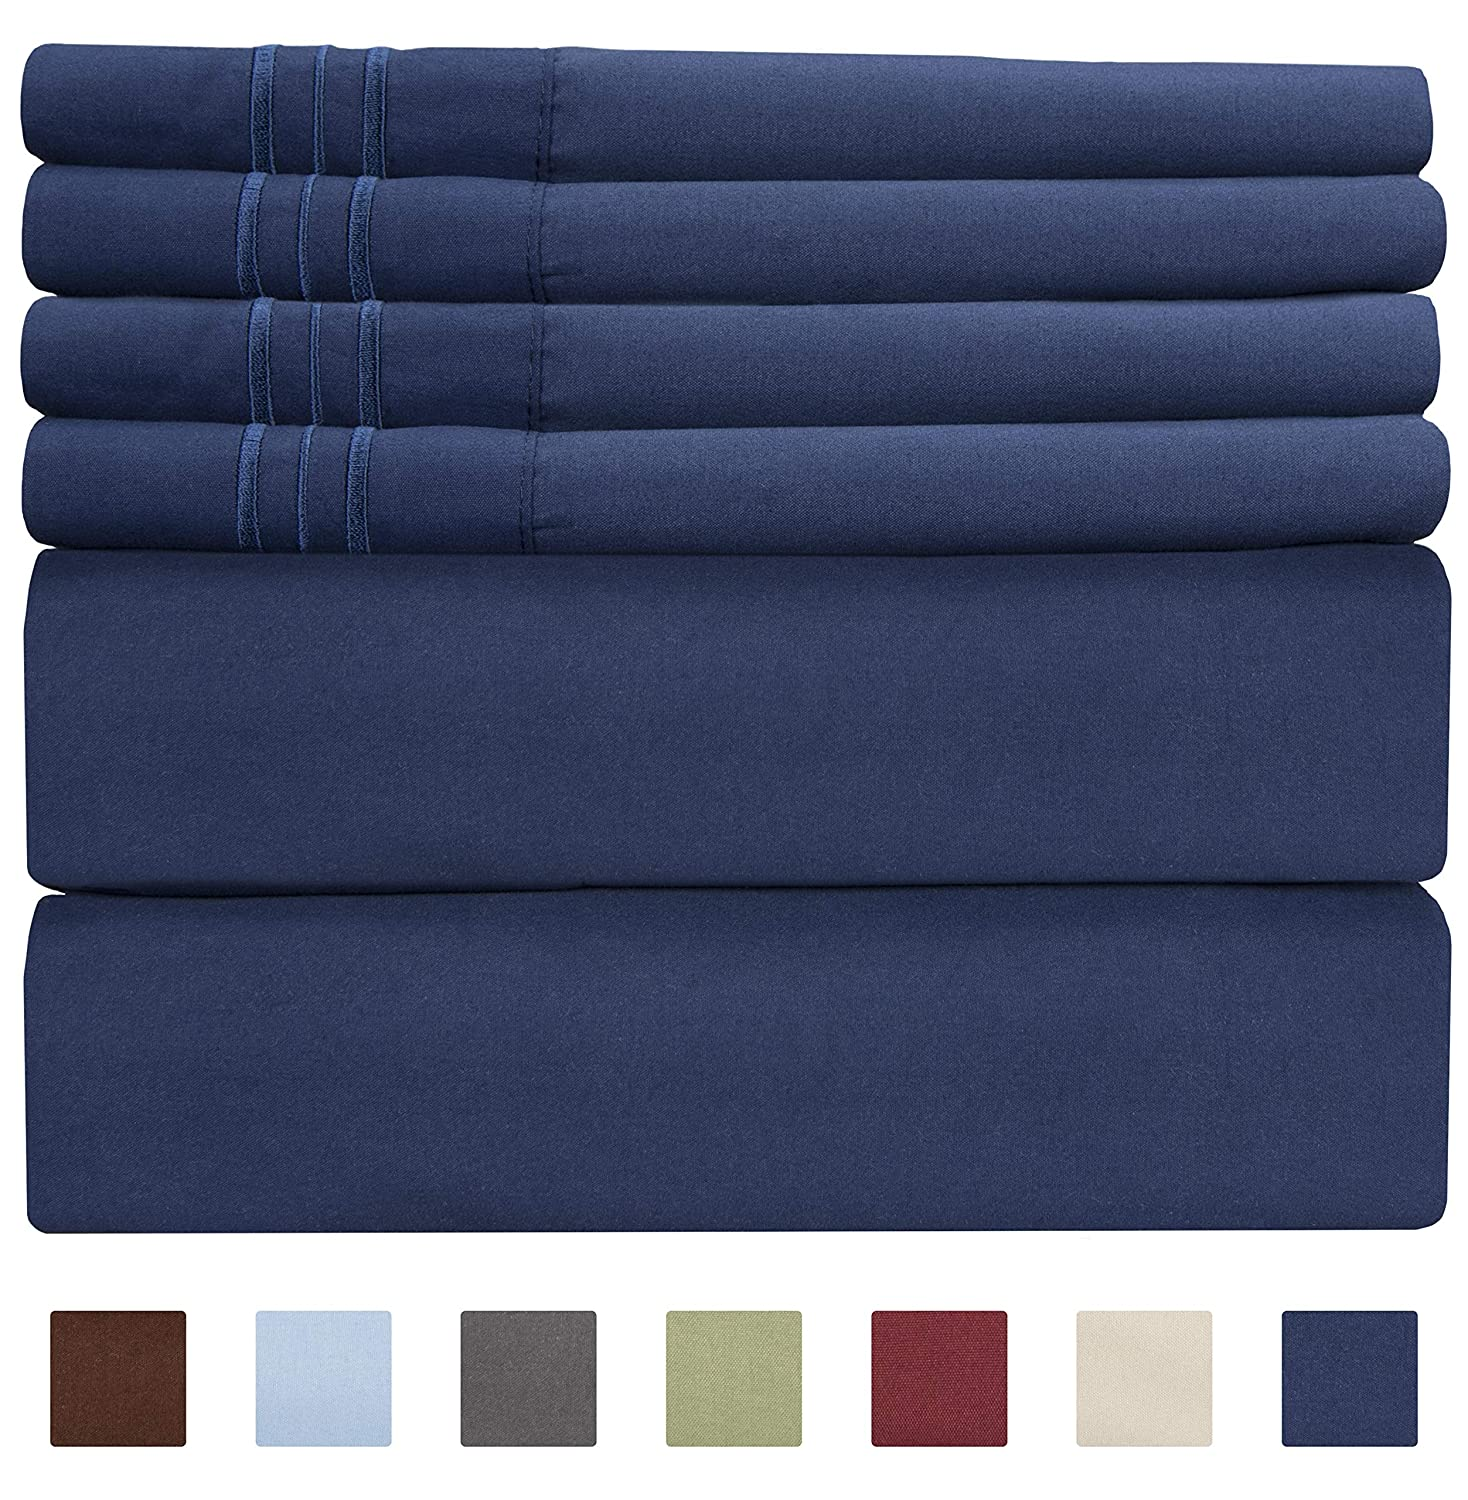 King Size Sheet Set - 6 Piece Set - Hotel Luxury Bed Sheets - Extra Soft - Deep Pockets - Easy Fit - Cooling Sheets - Wrinkle Free - Royal Blue - Navy Blue Bed Sheets - Kings Sheets - 6 PC